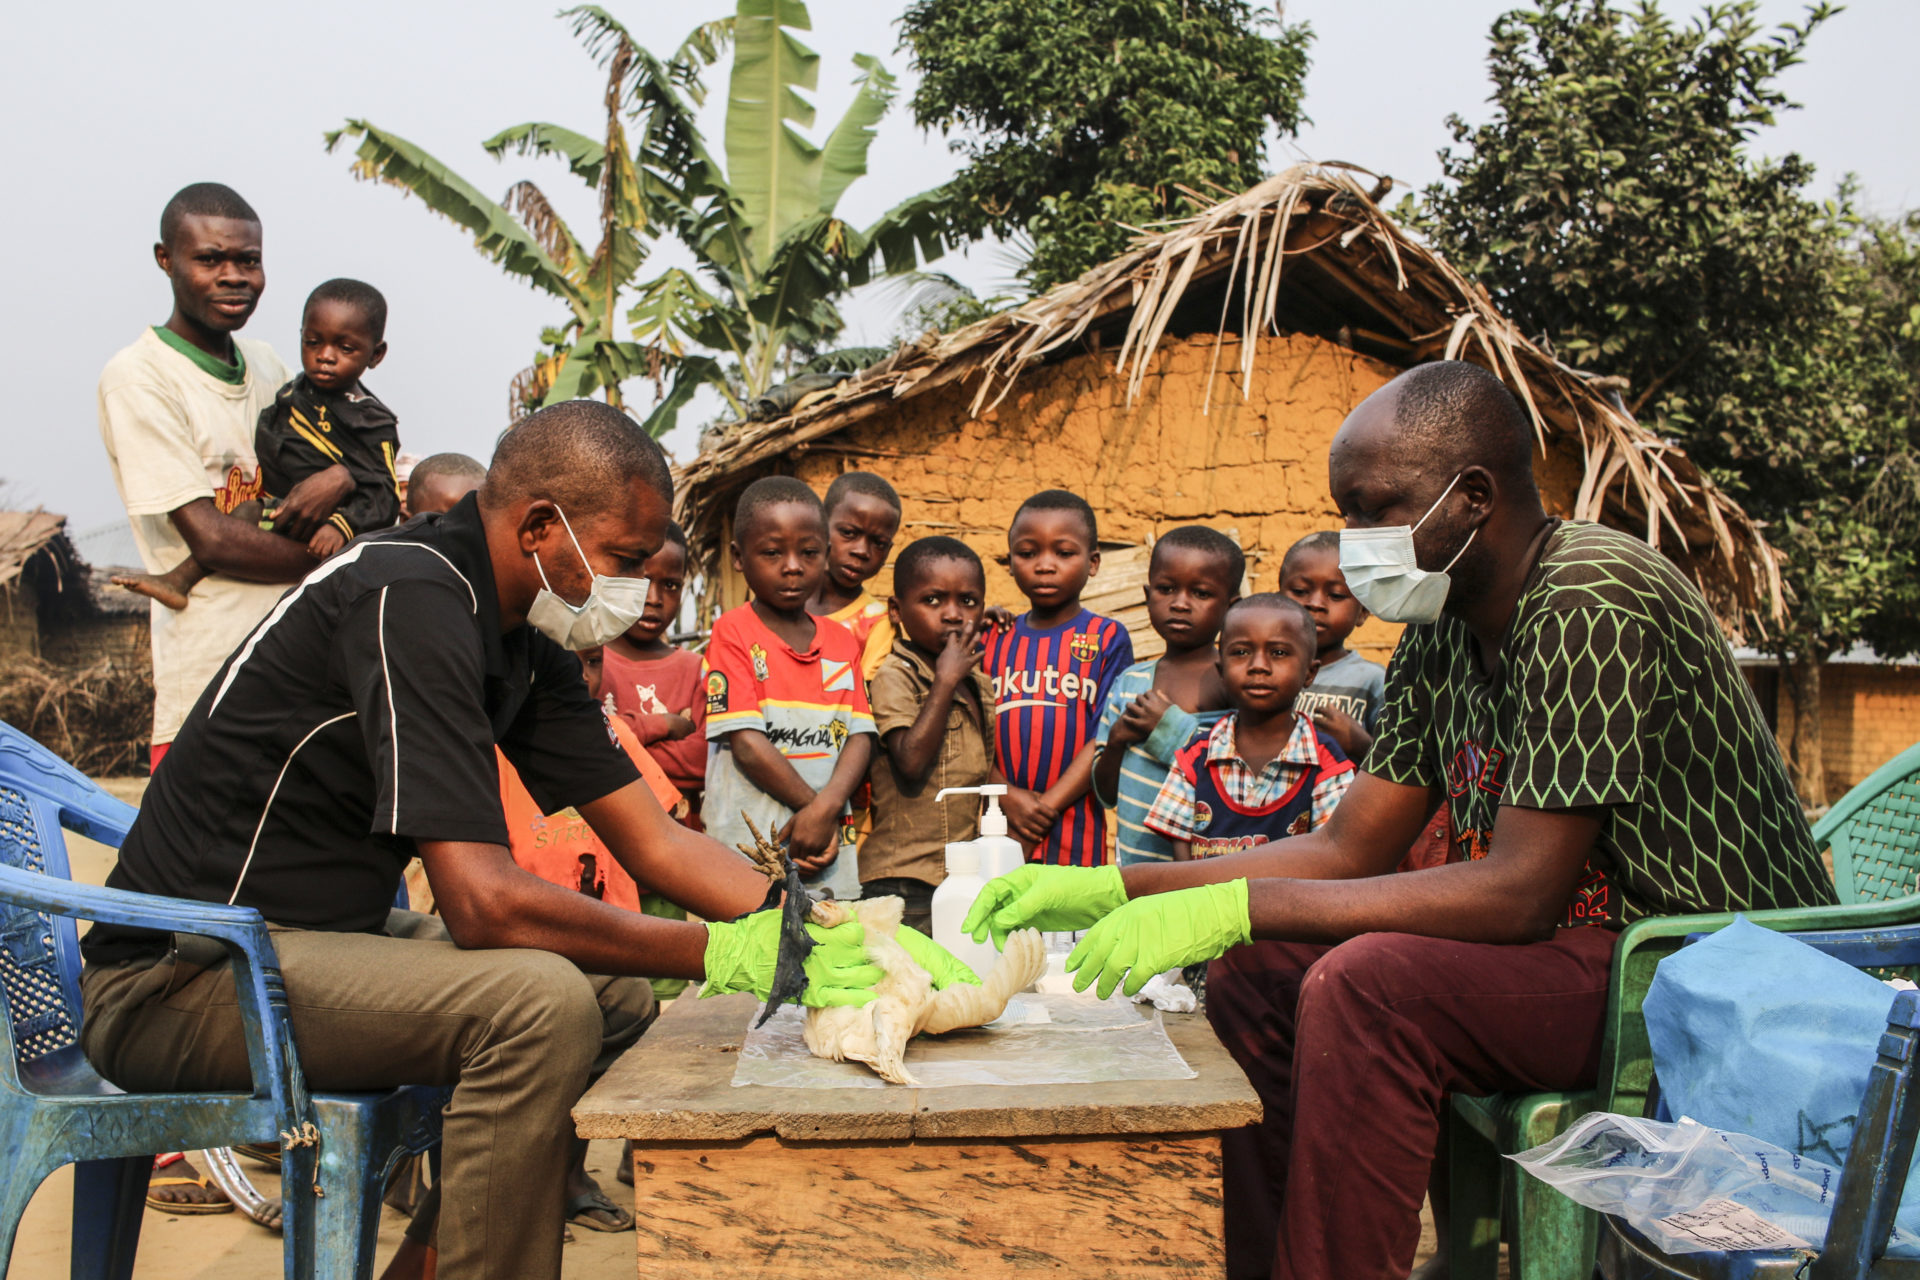 Blood sampling on chicken, Bodzuna village, DRC, august 2019